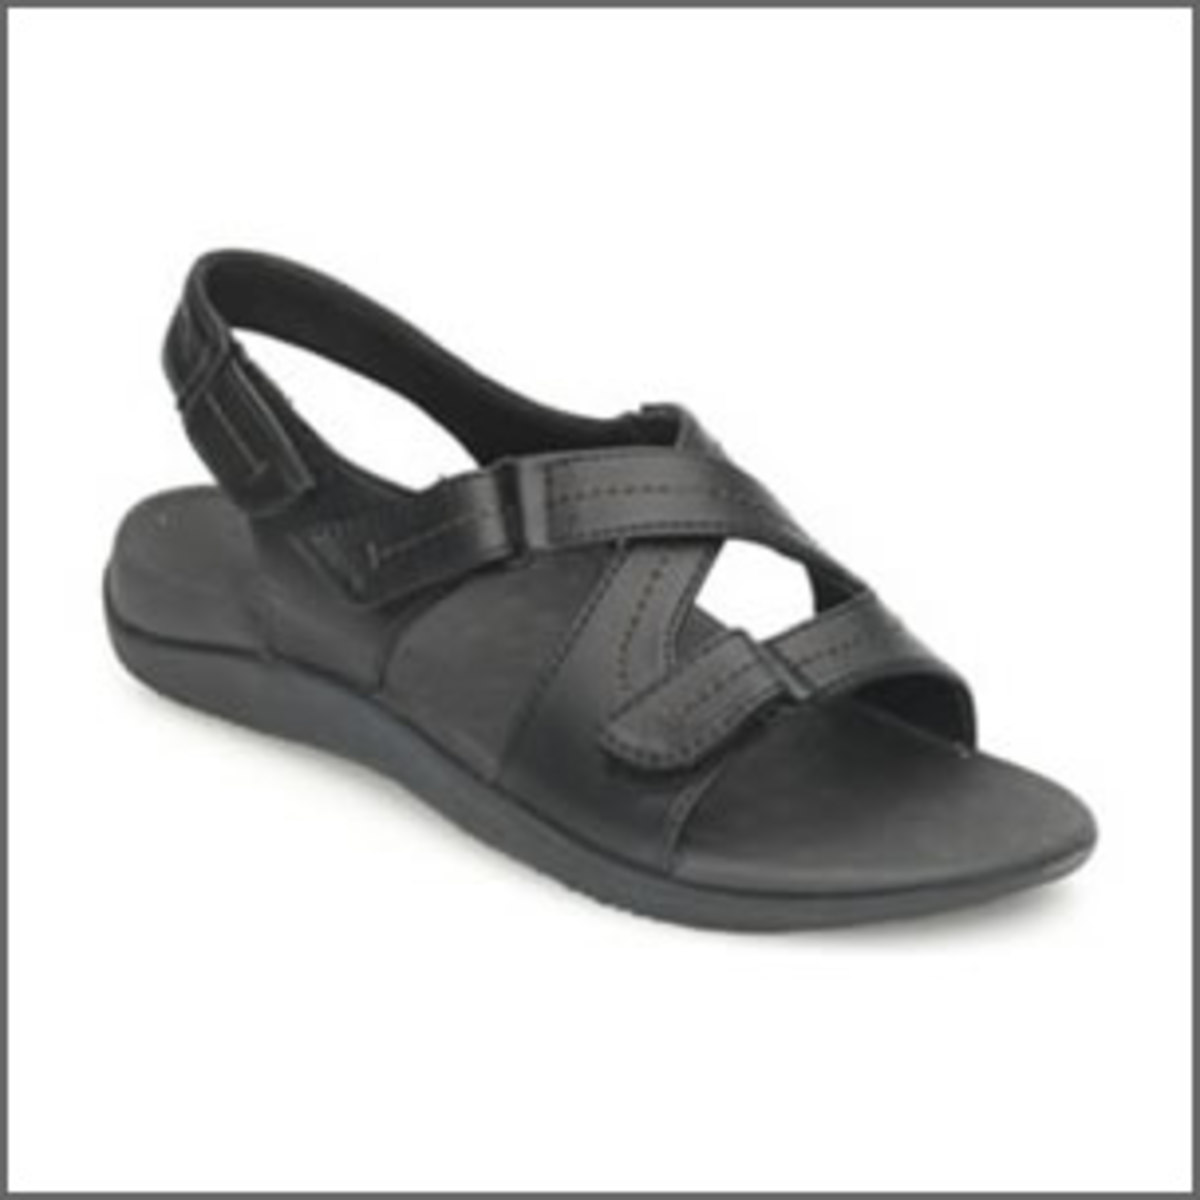 Orthaheel Women's Adjust sandal